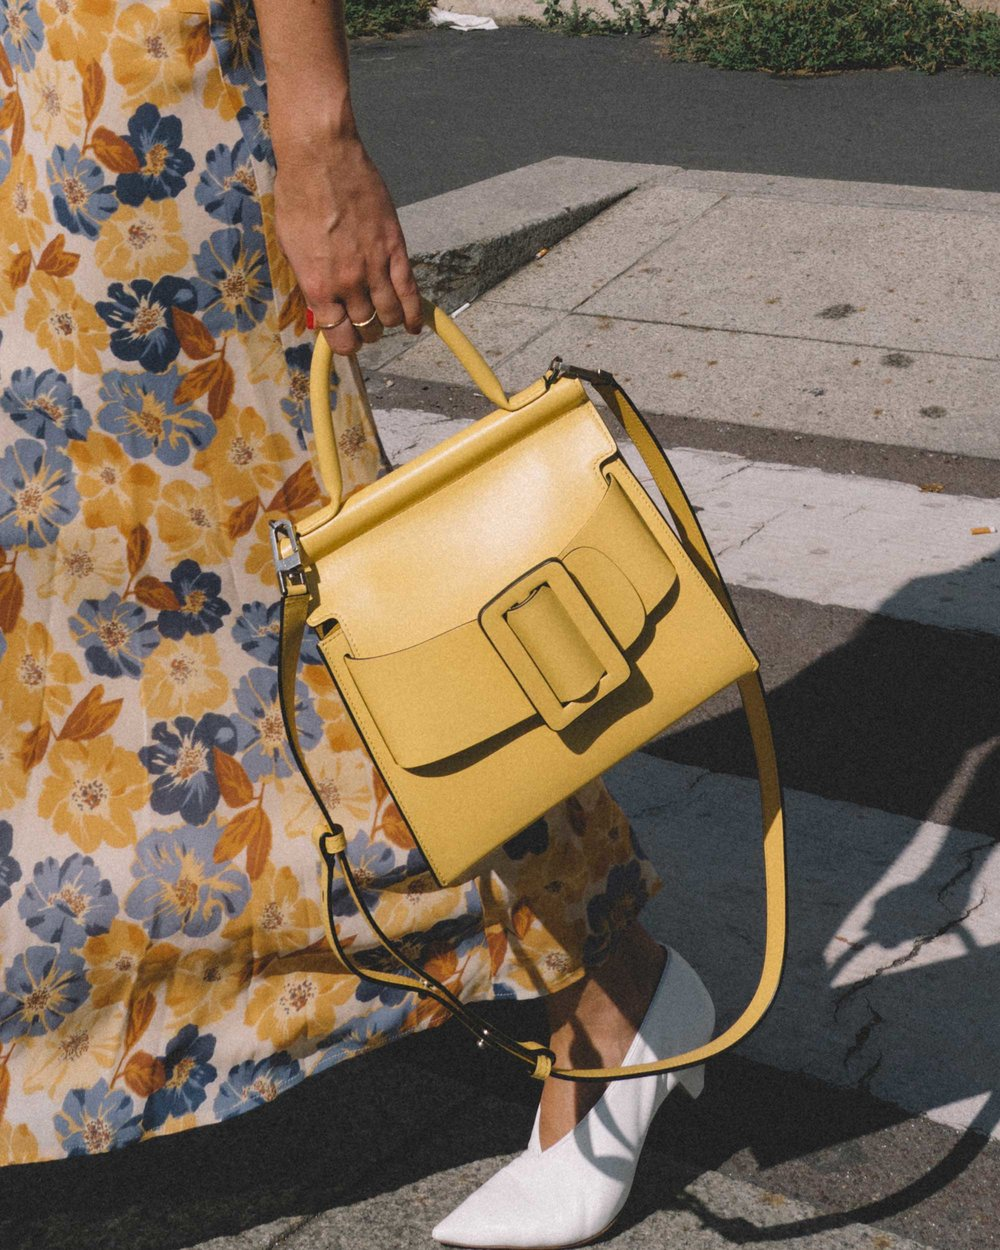 Yellow Floral midi length dress and Boyy Karl 24 buckled leather tote yellow-5.jpg